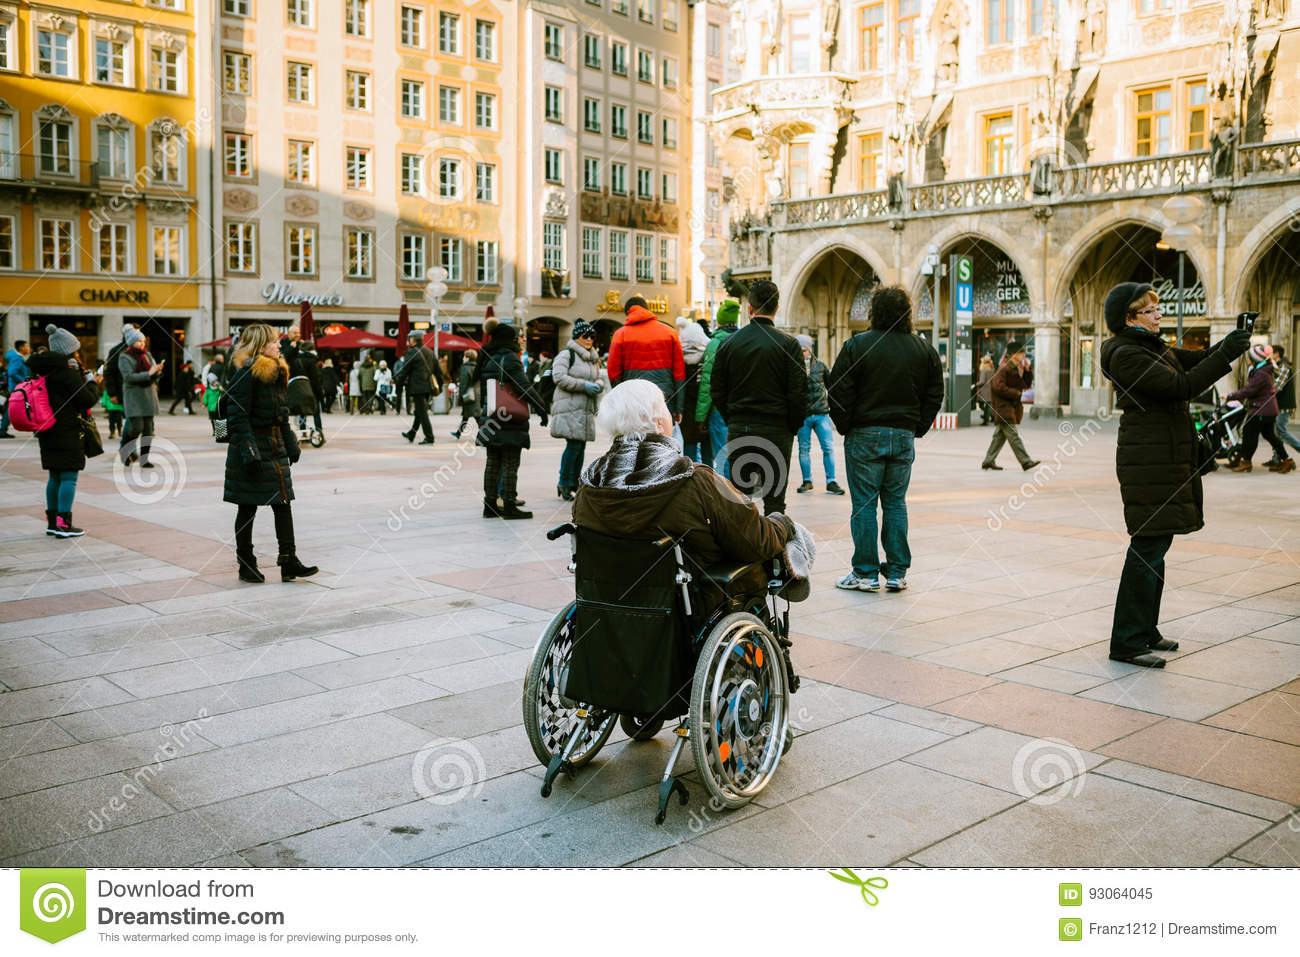 Munich, Germany, December 29, 2016: An elderly woman in a wheelchair examines the sights of Munich on the main square of